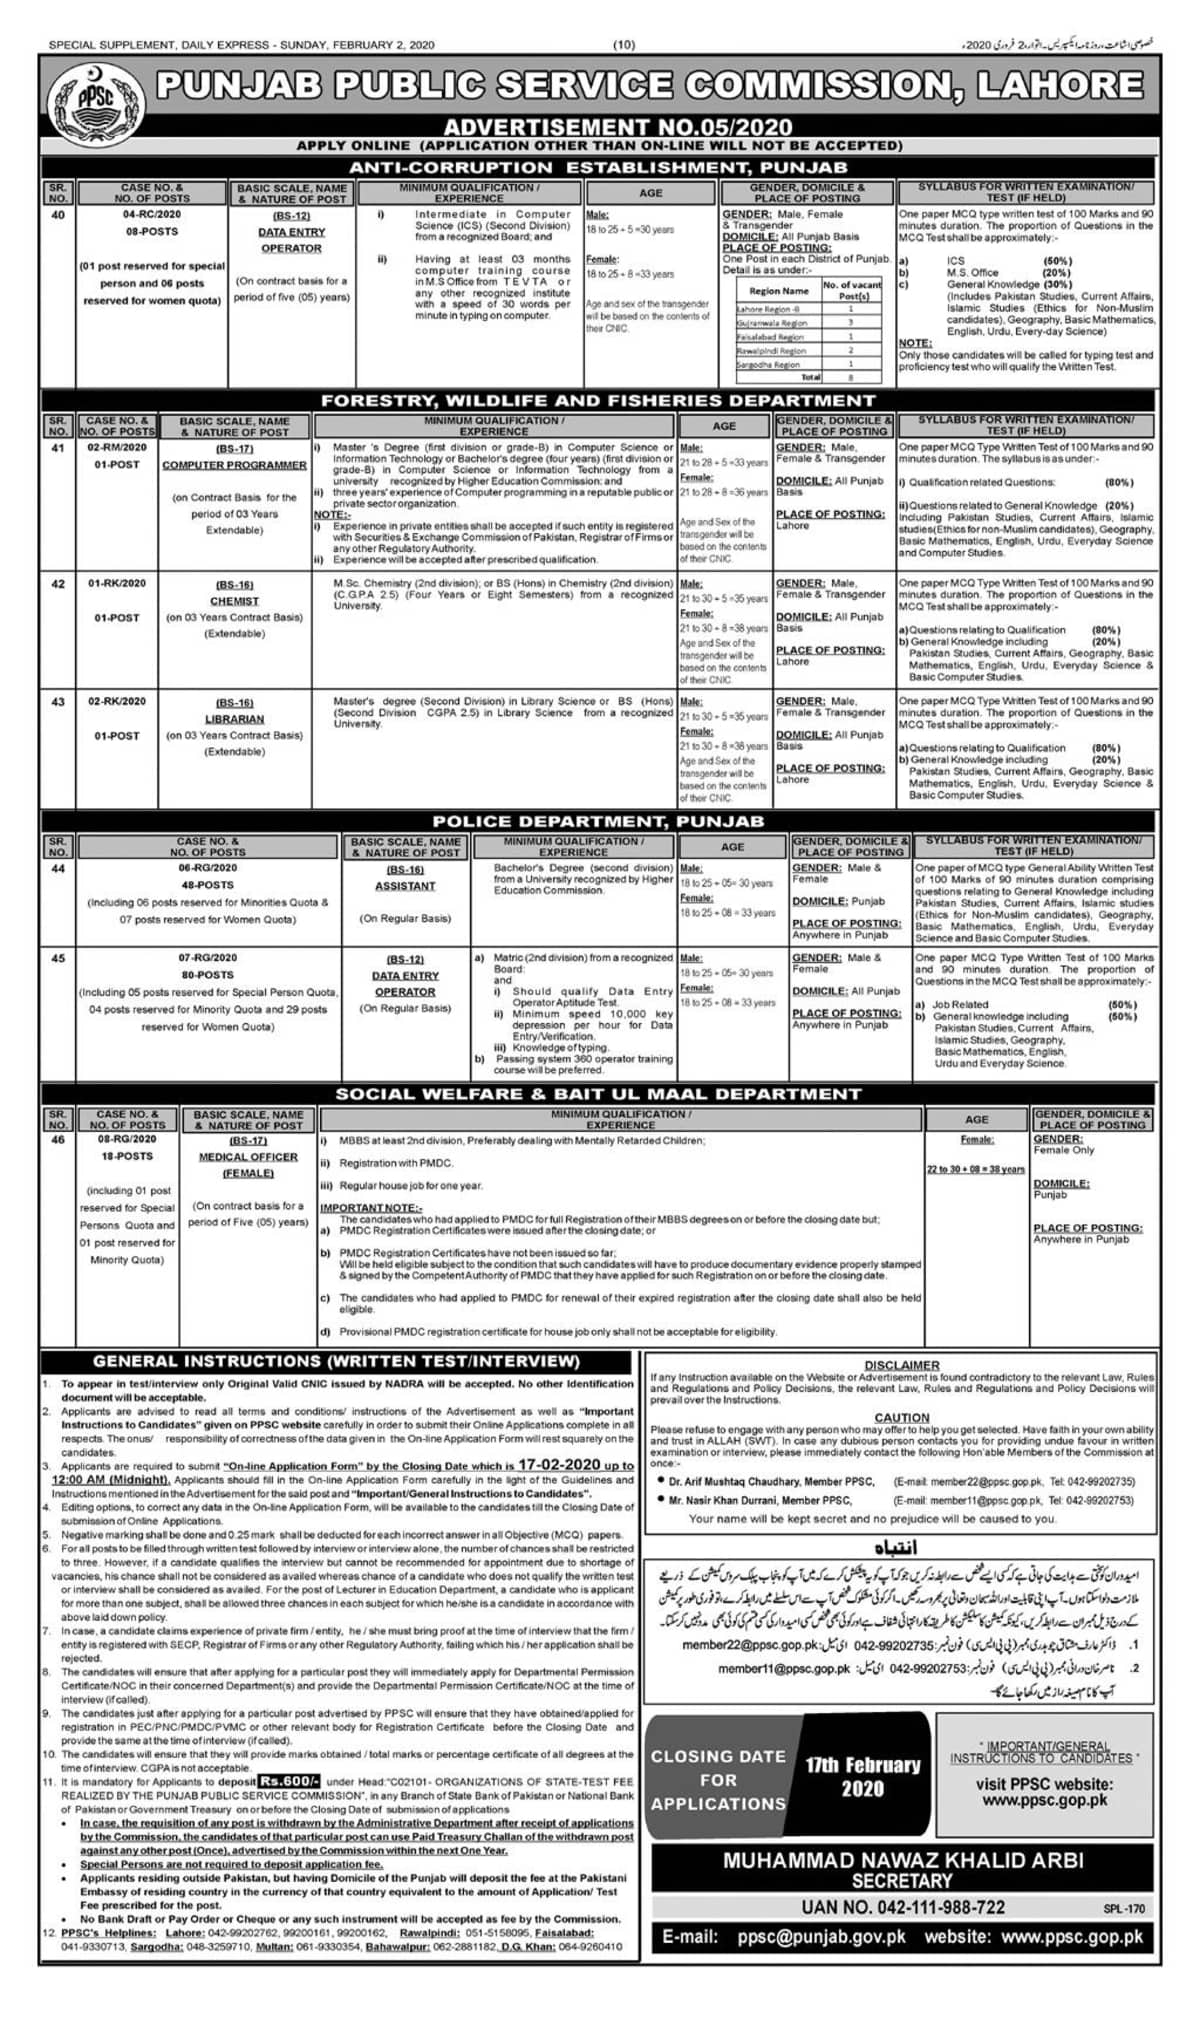 PPSC Jobs 2020 Advertisement No 5 Apply Online Latest